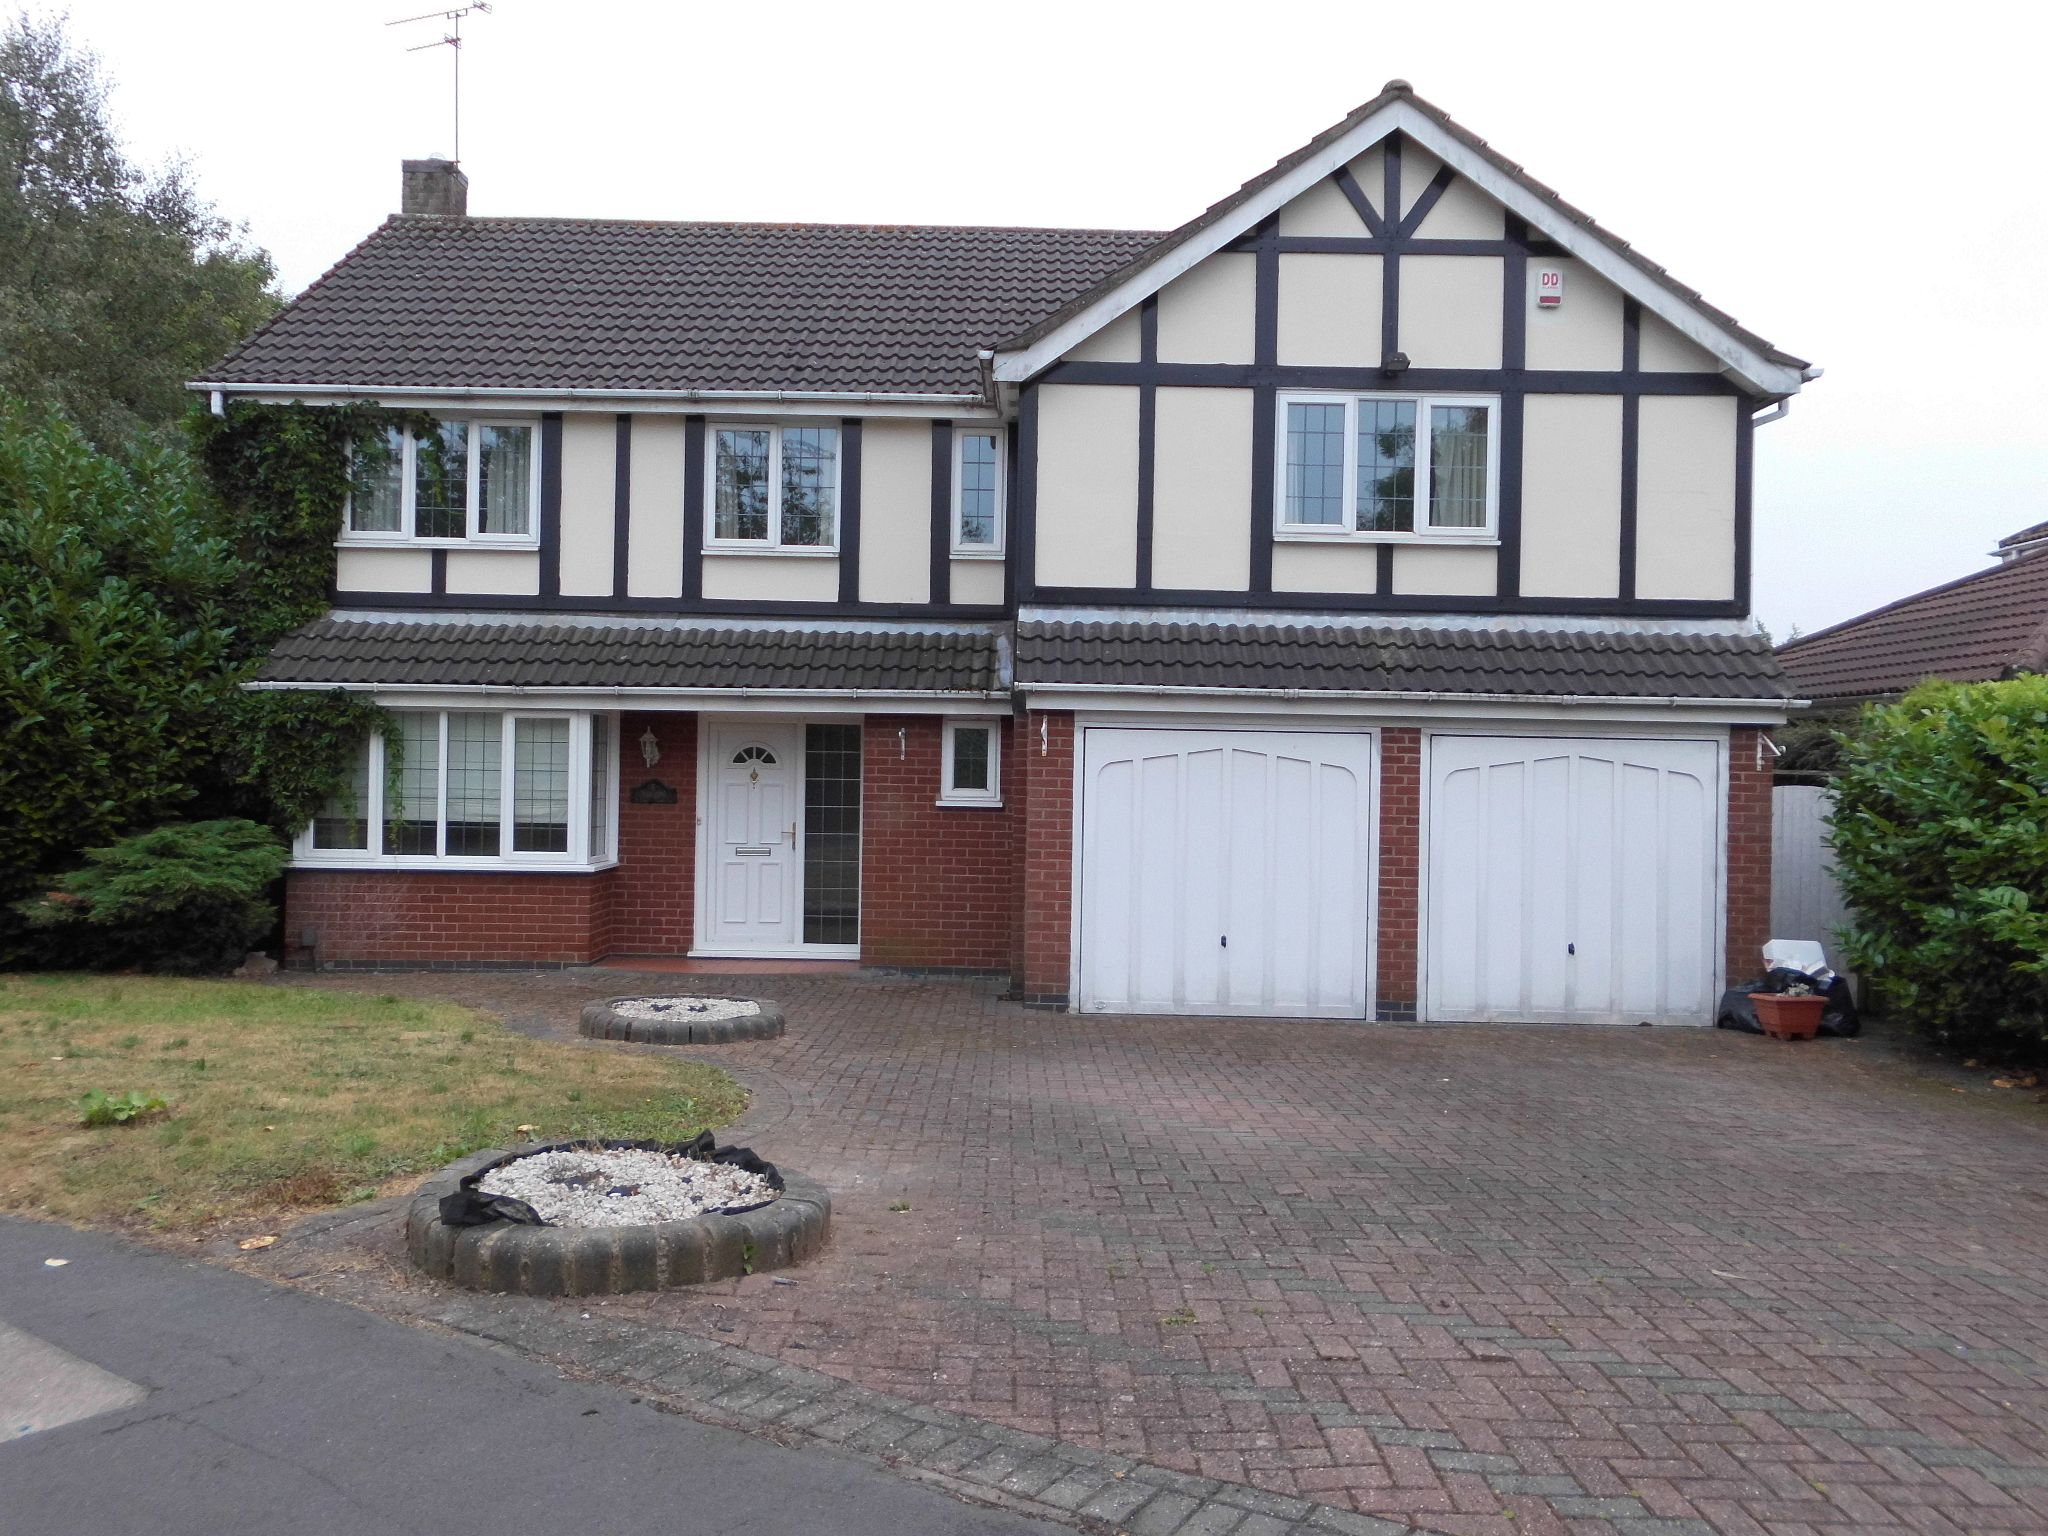 5 bedroom detached house SSTC in Leicester - Property photograph.